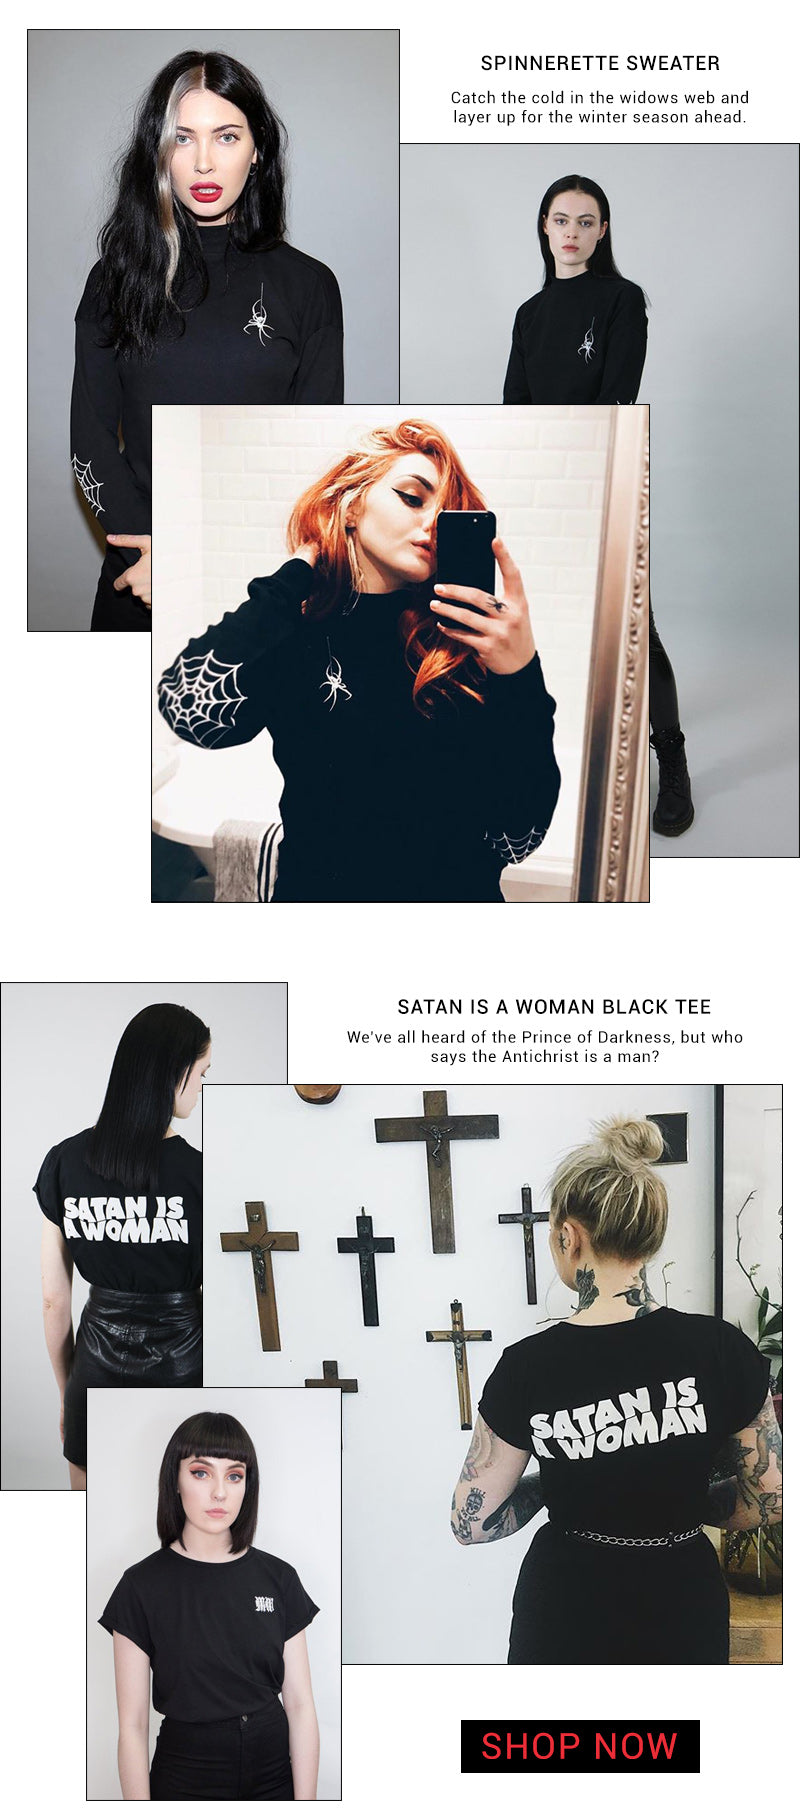 MARY WYATT SPINNERETTE SWEATER AND SATAN IS A WOMAN TEE